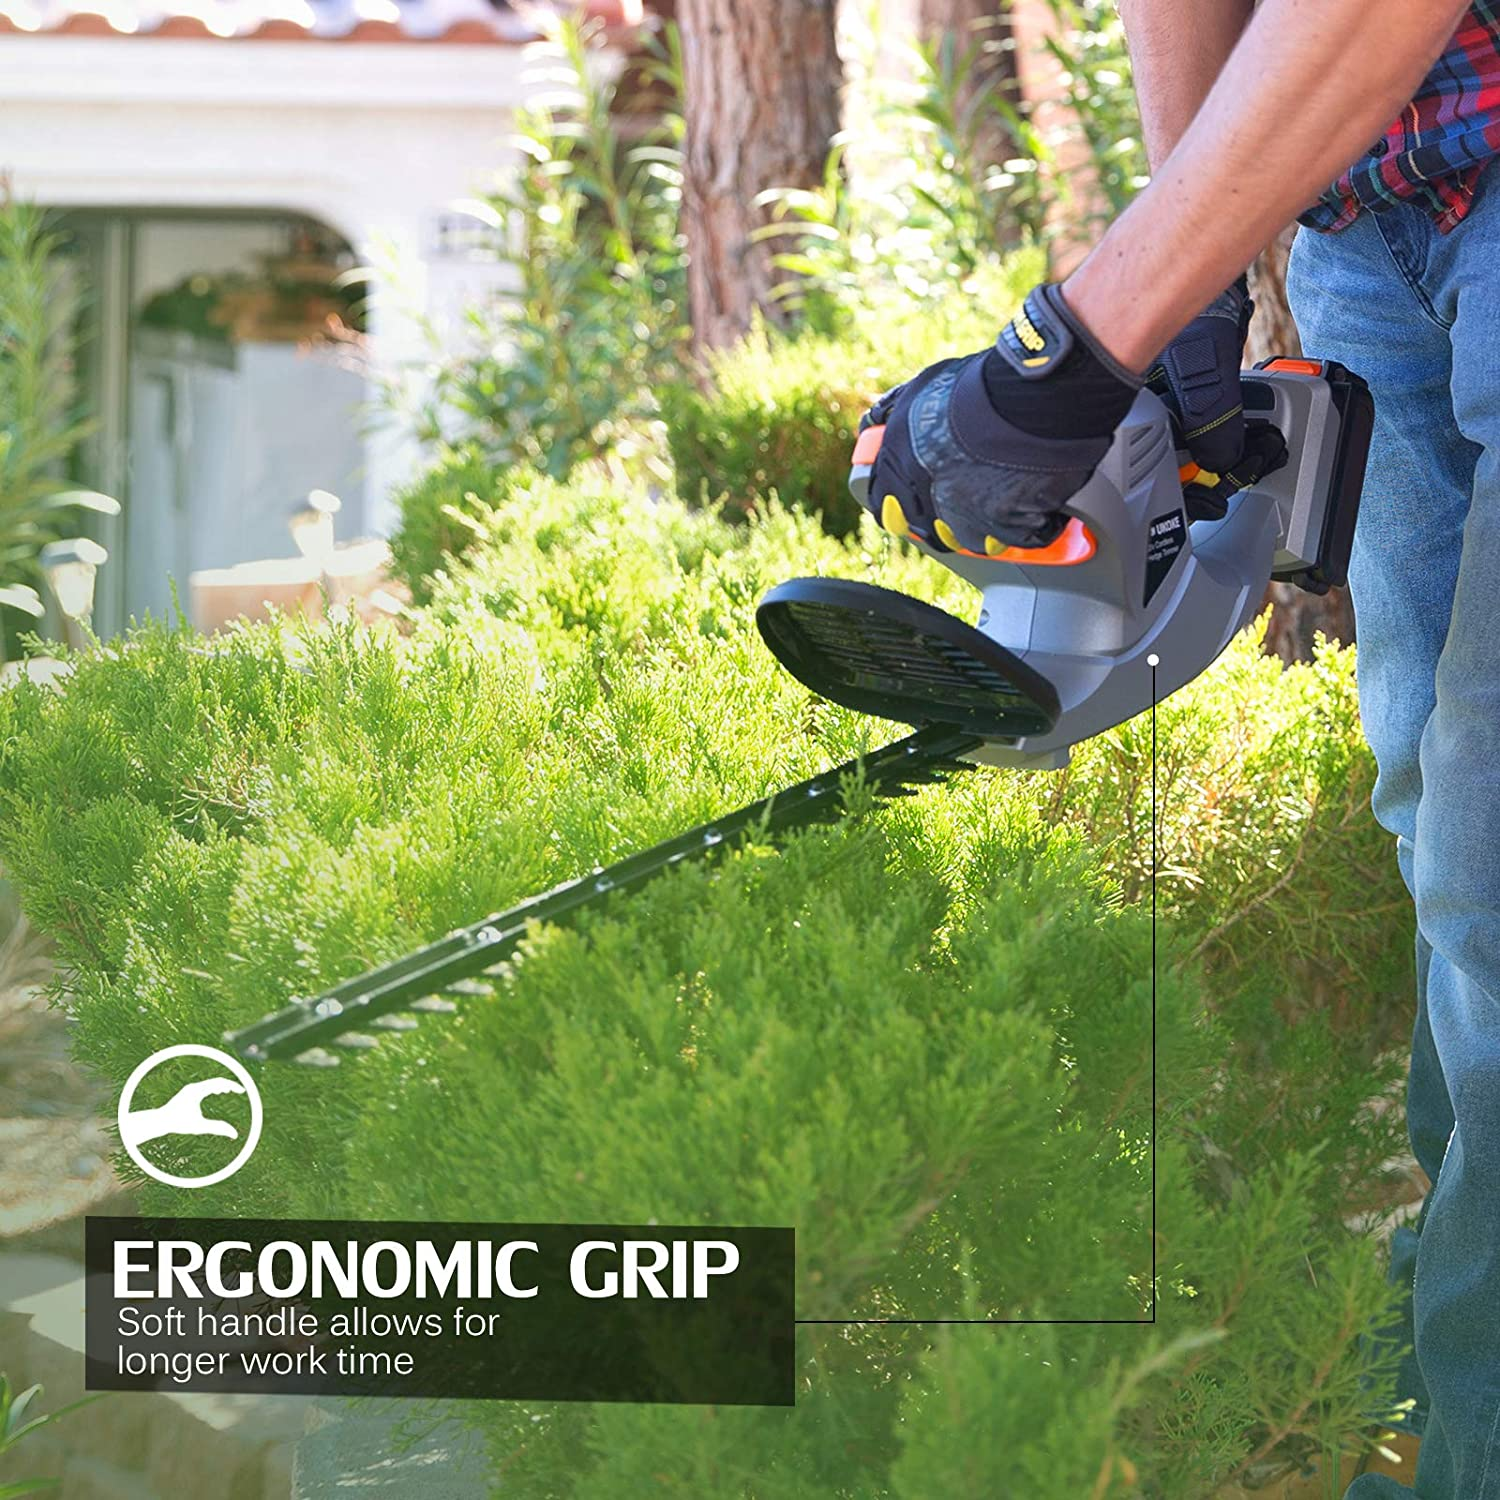 UKOKE Cordless Electric Power Hedge Trimmer with Dual-Action Blade Silver Ukoke Technology U01HT Includes 20V 2.0A Lithium Ion Battery /& Charger